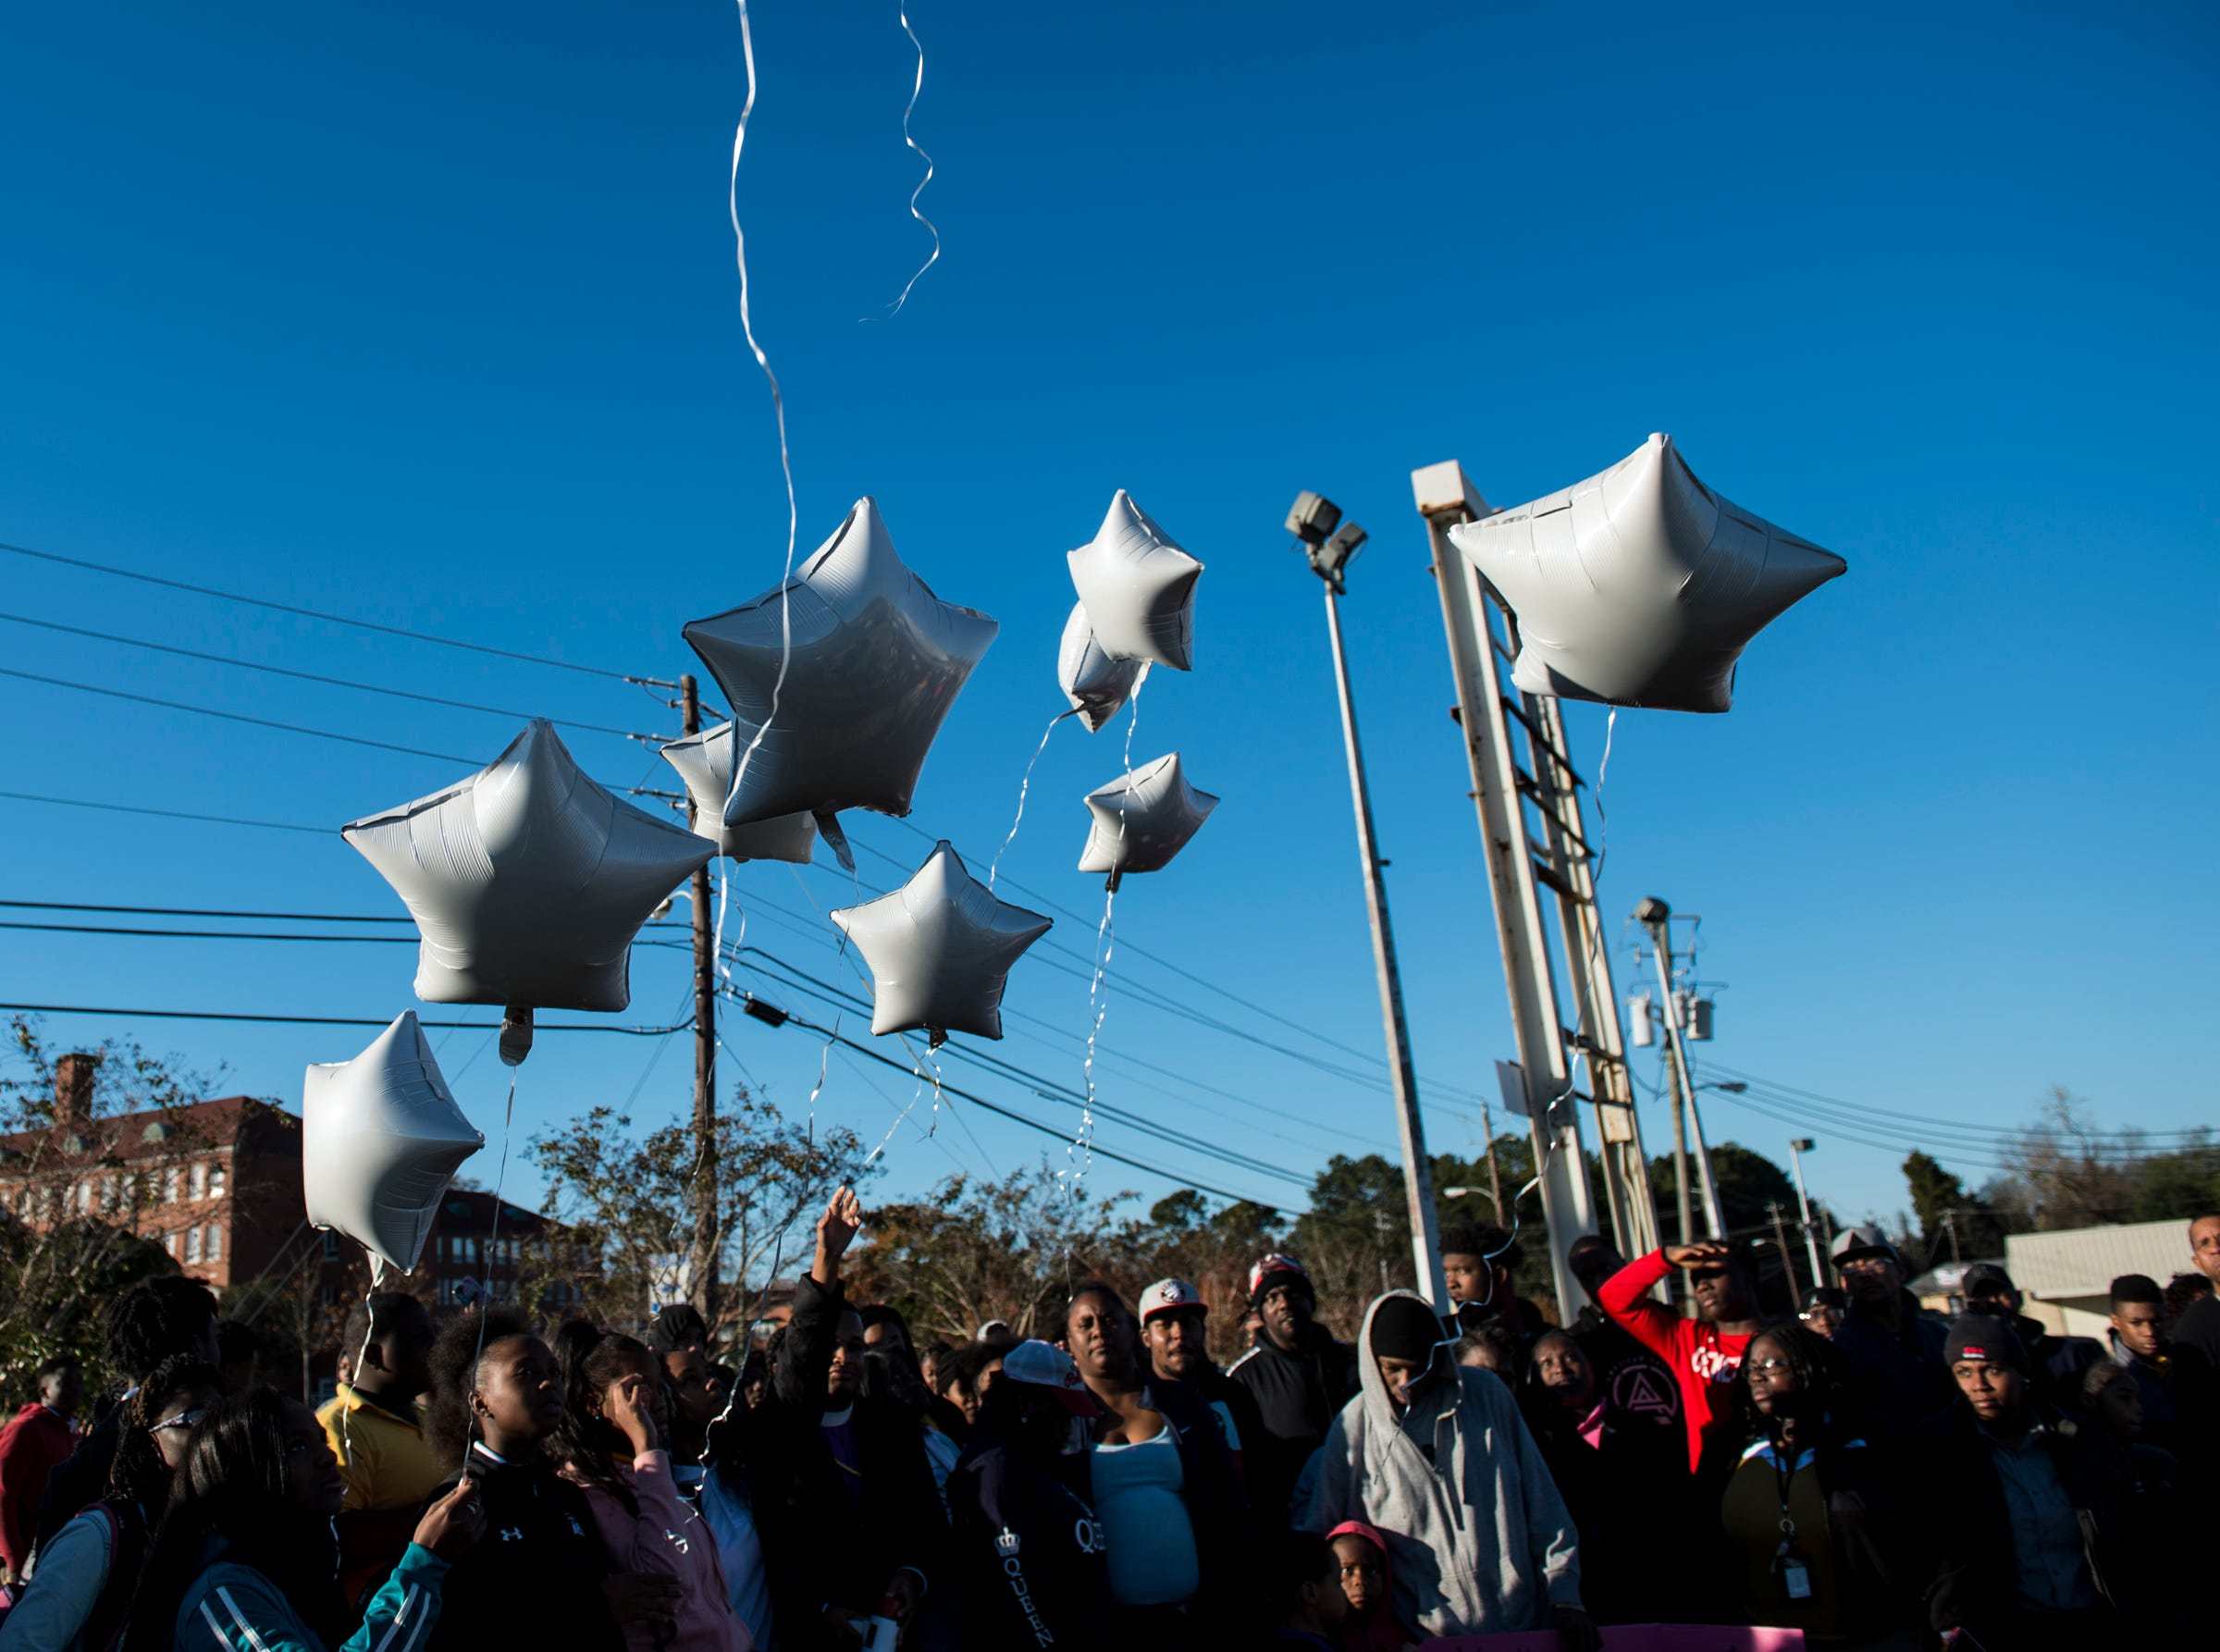 Ballons are released during a vigil for Keiauna Williams across from Carver High School in Montgomery, Ala., on Tuesday, Dec. 4, 2018. Williams was died after being hit by a car Saturday night.